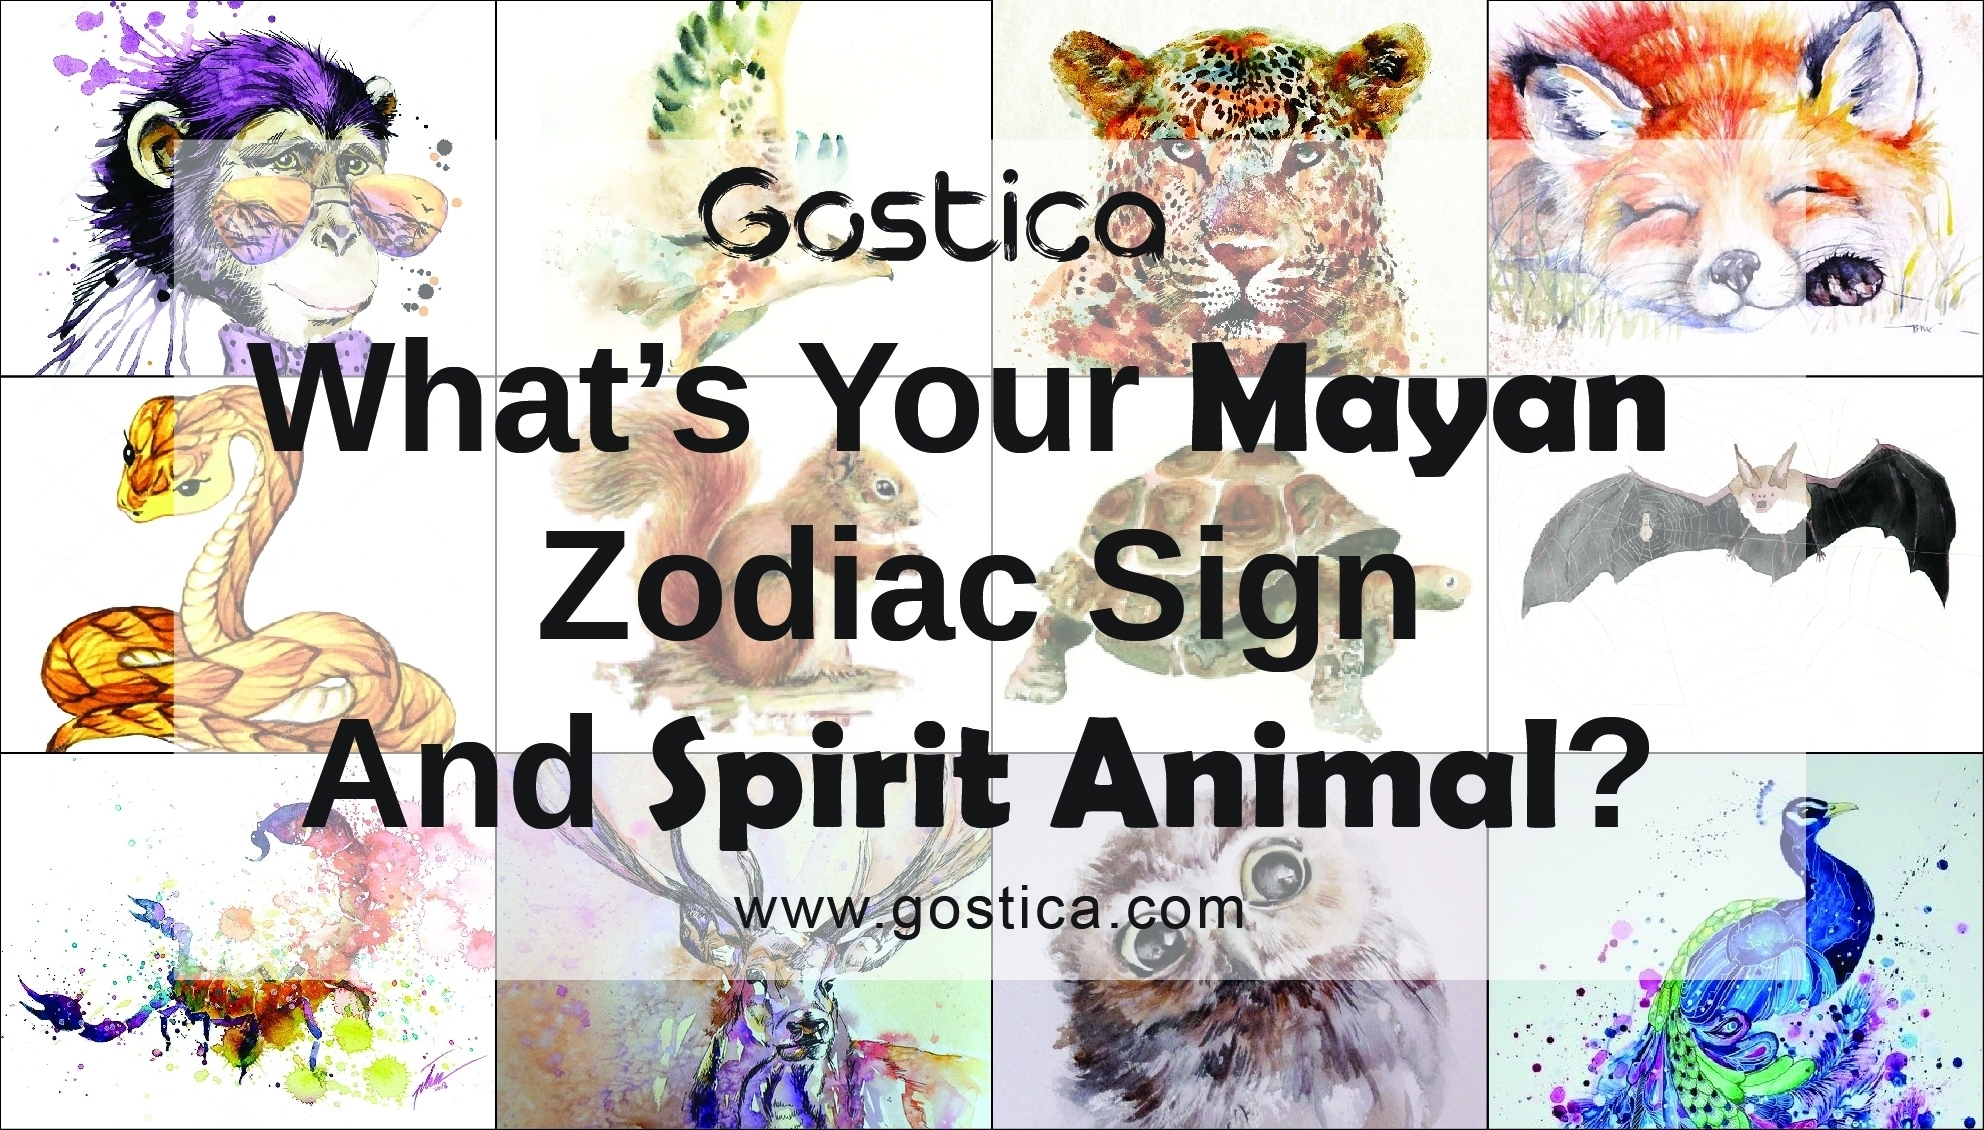 What's Your Mayan Zodiac Sign And Spirit Animal?-Mayan